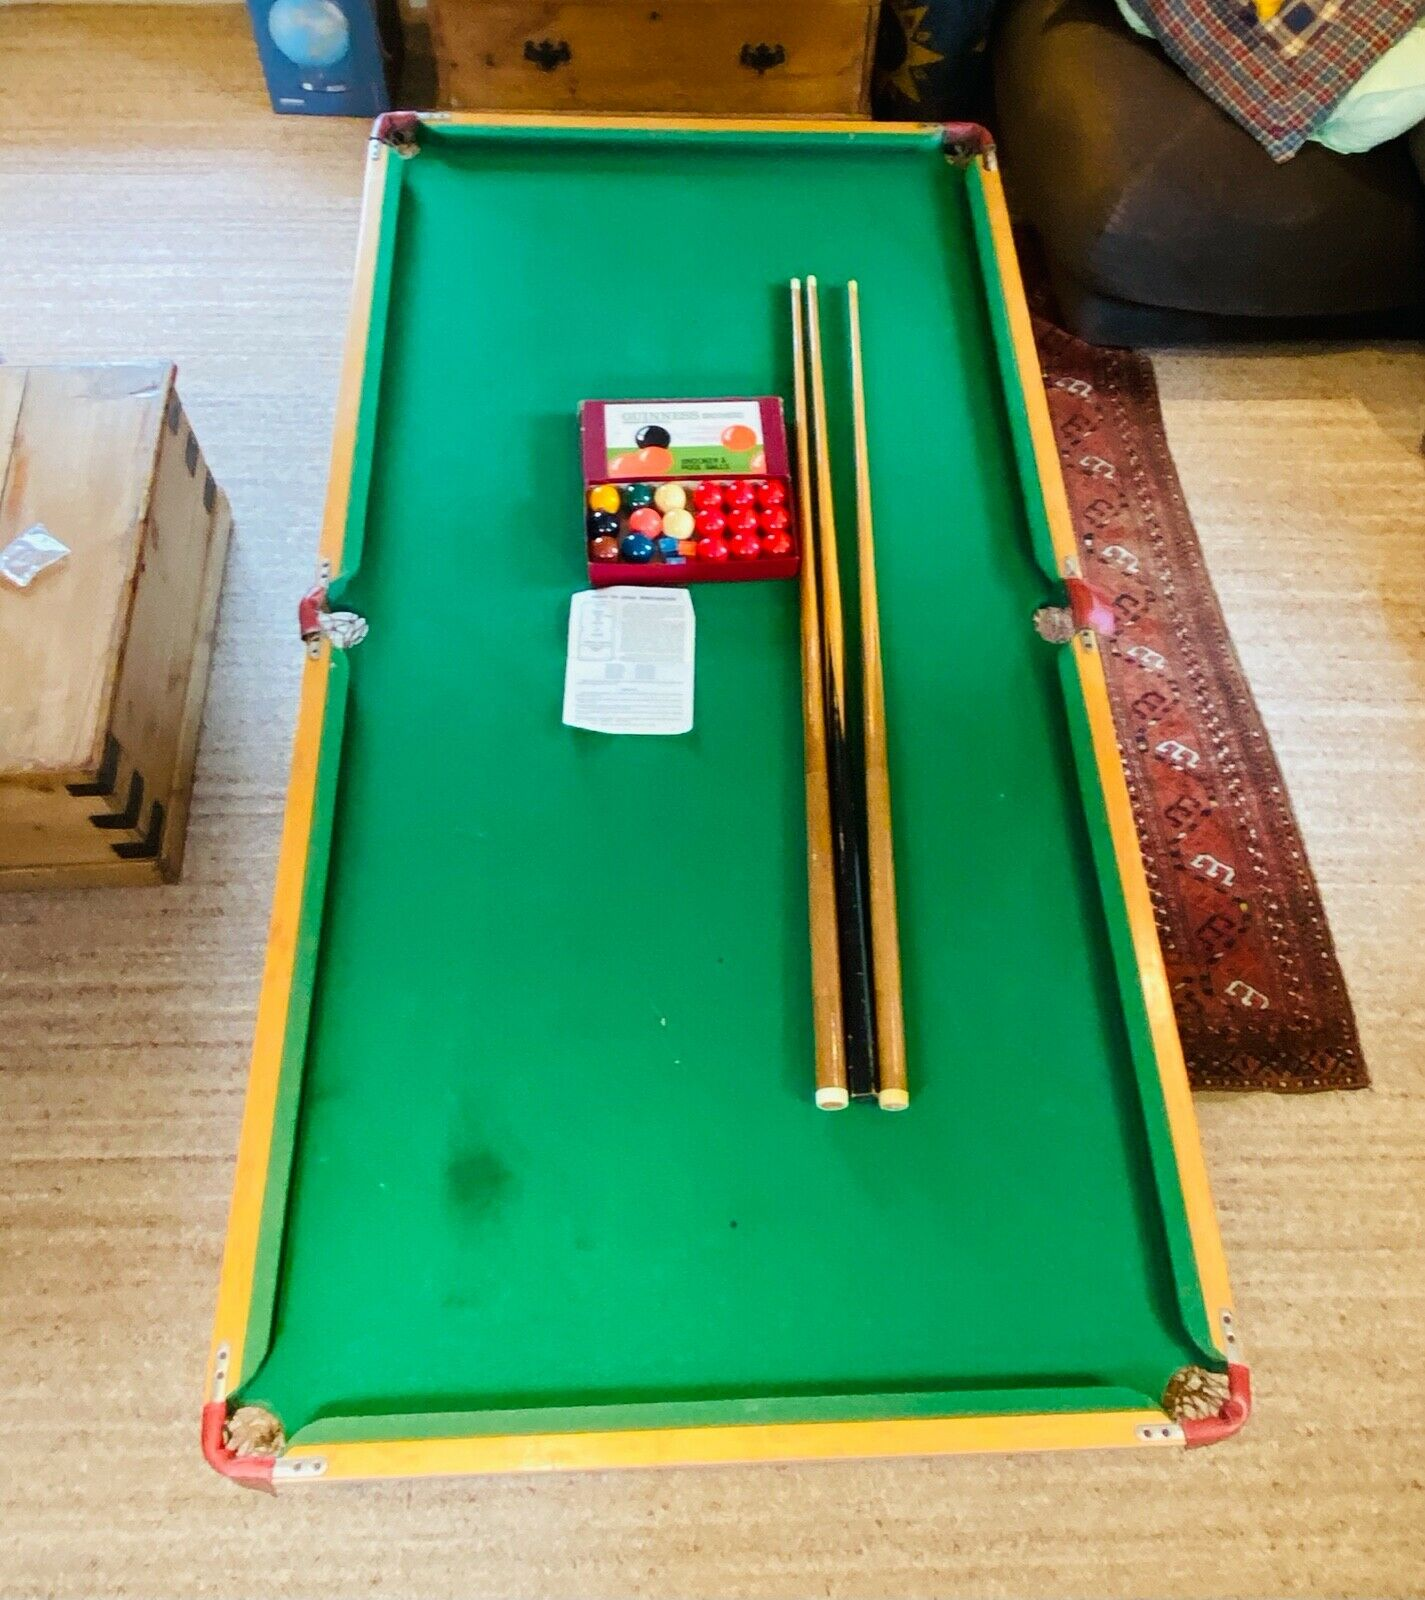 Table Top Snooker Set 1970s Includes Balls, Cues and Scoreboard